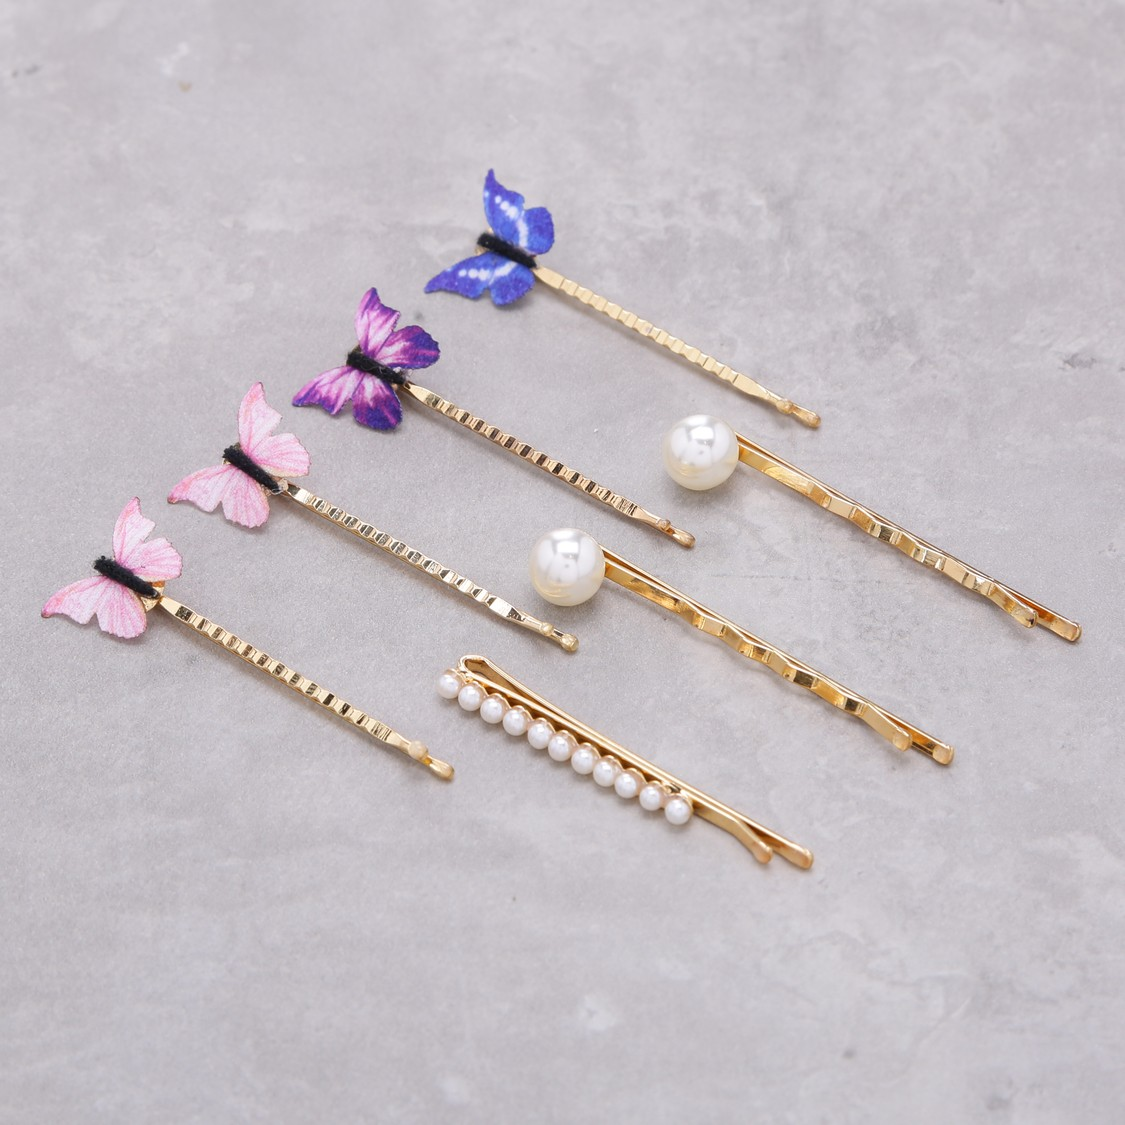 Assorted Hair Clip - Set of 7